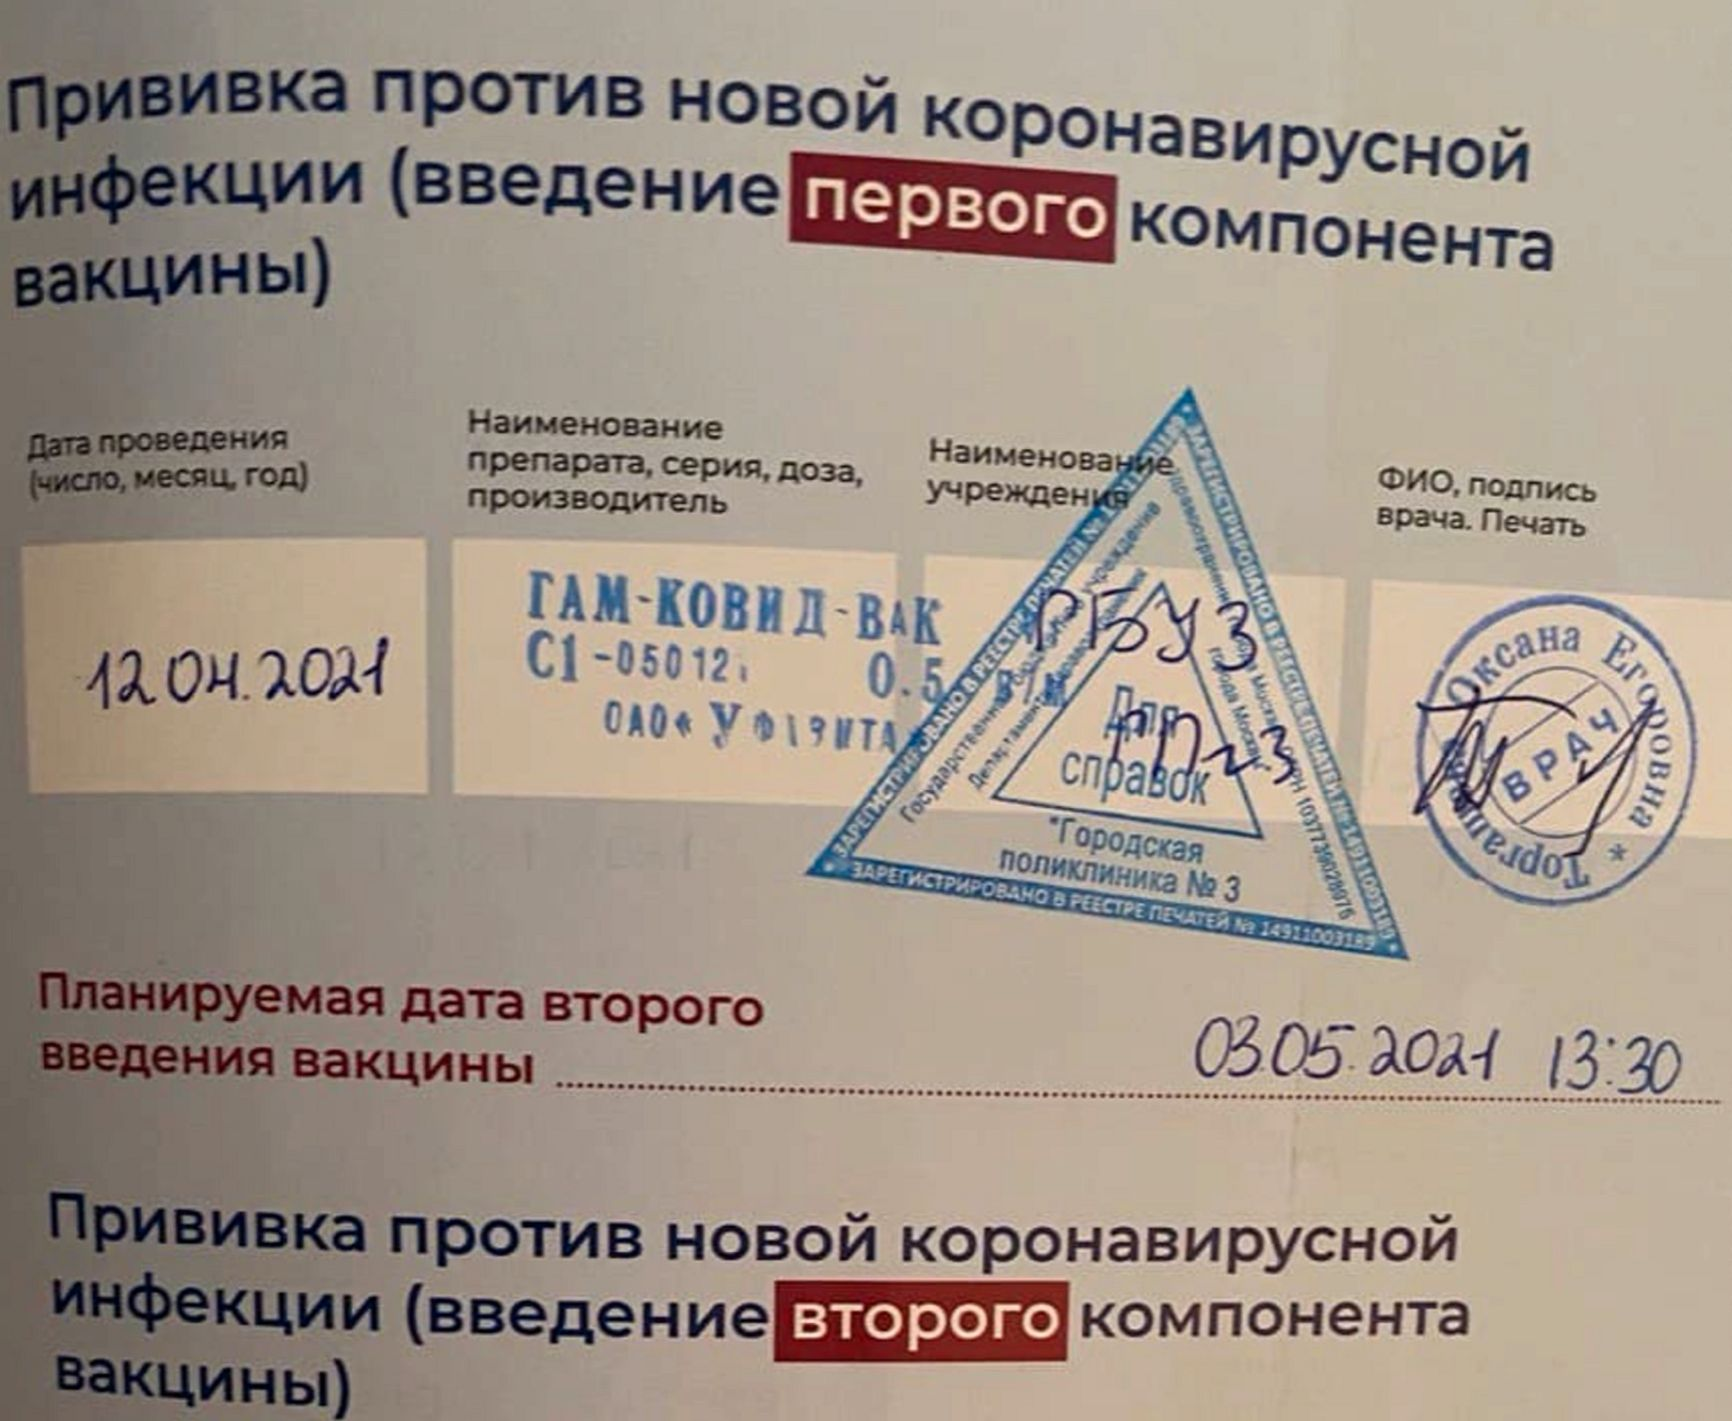 Certificate issued to Maria